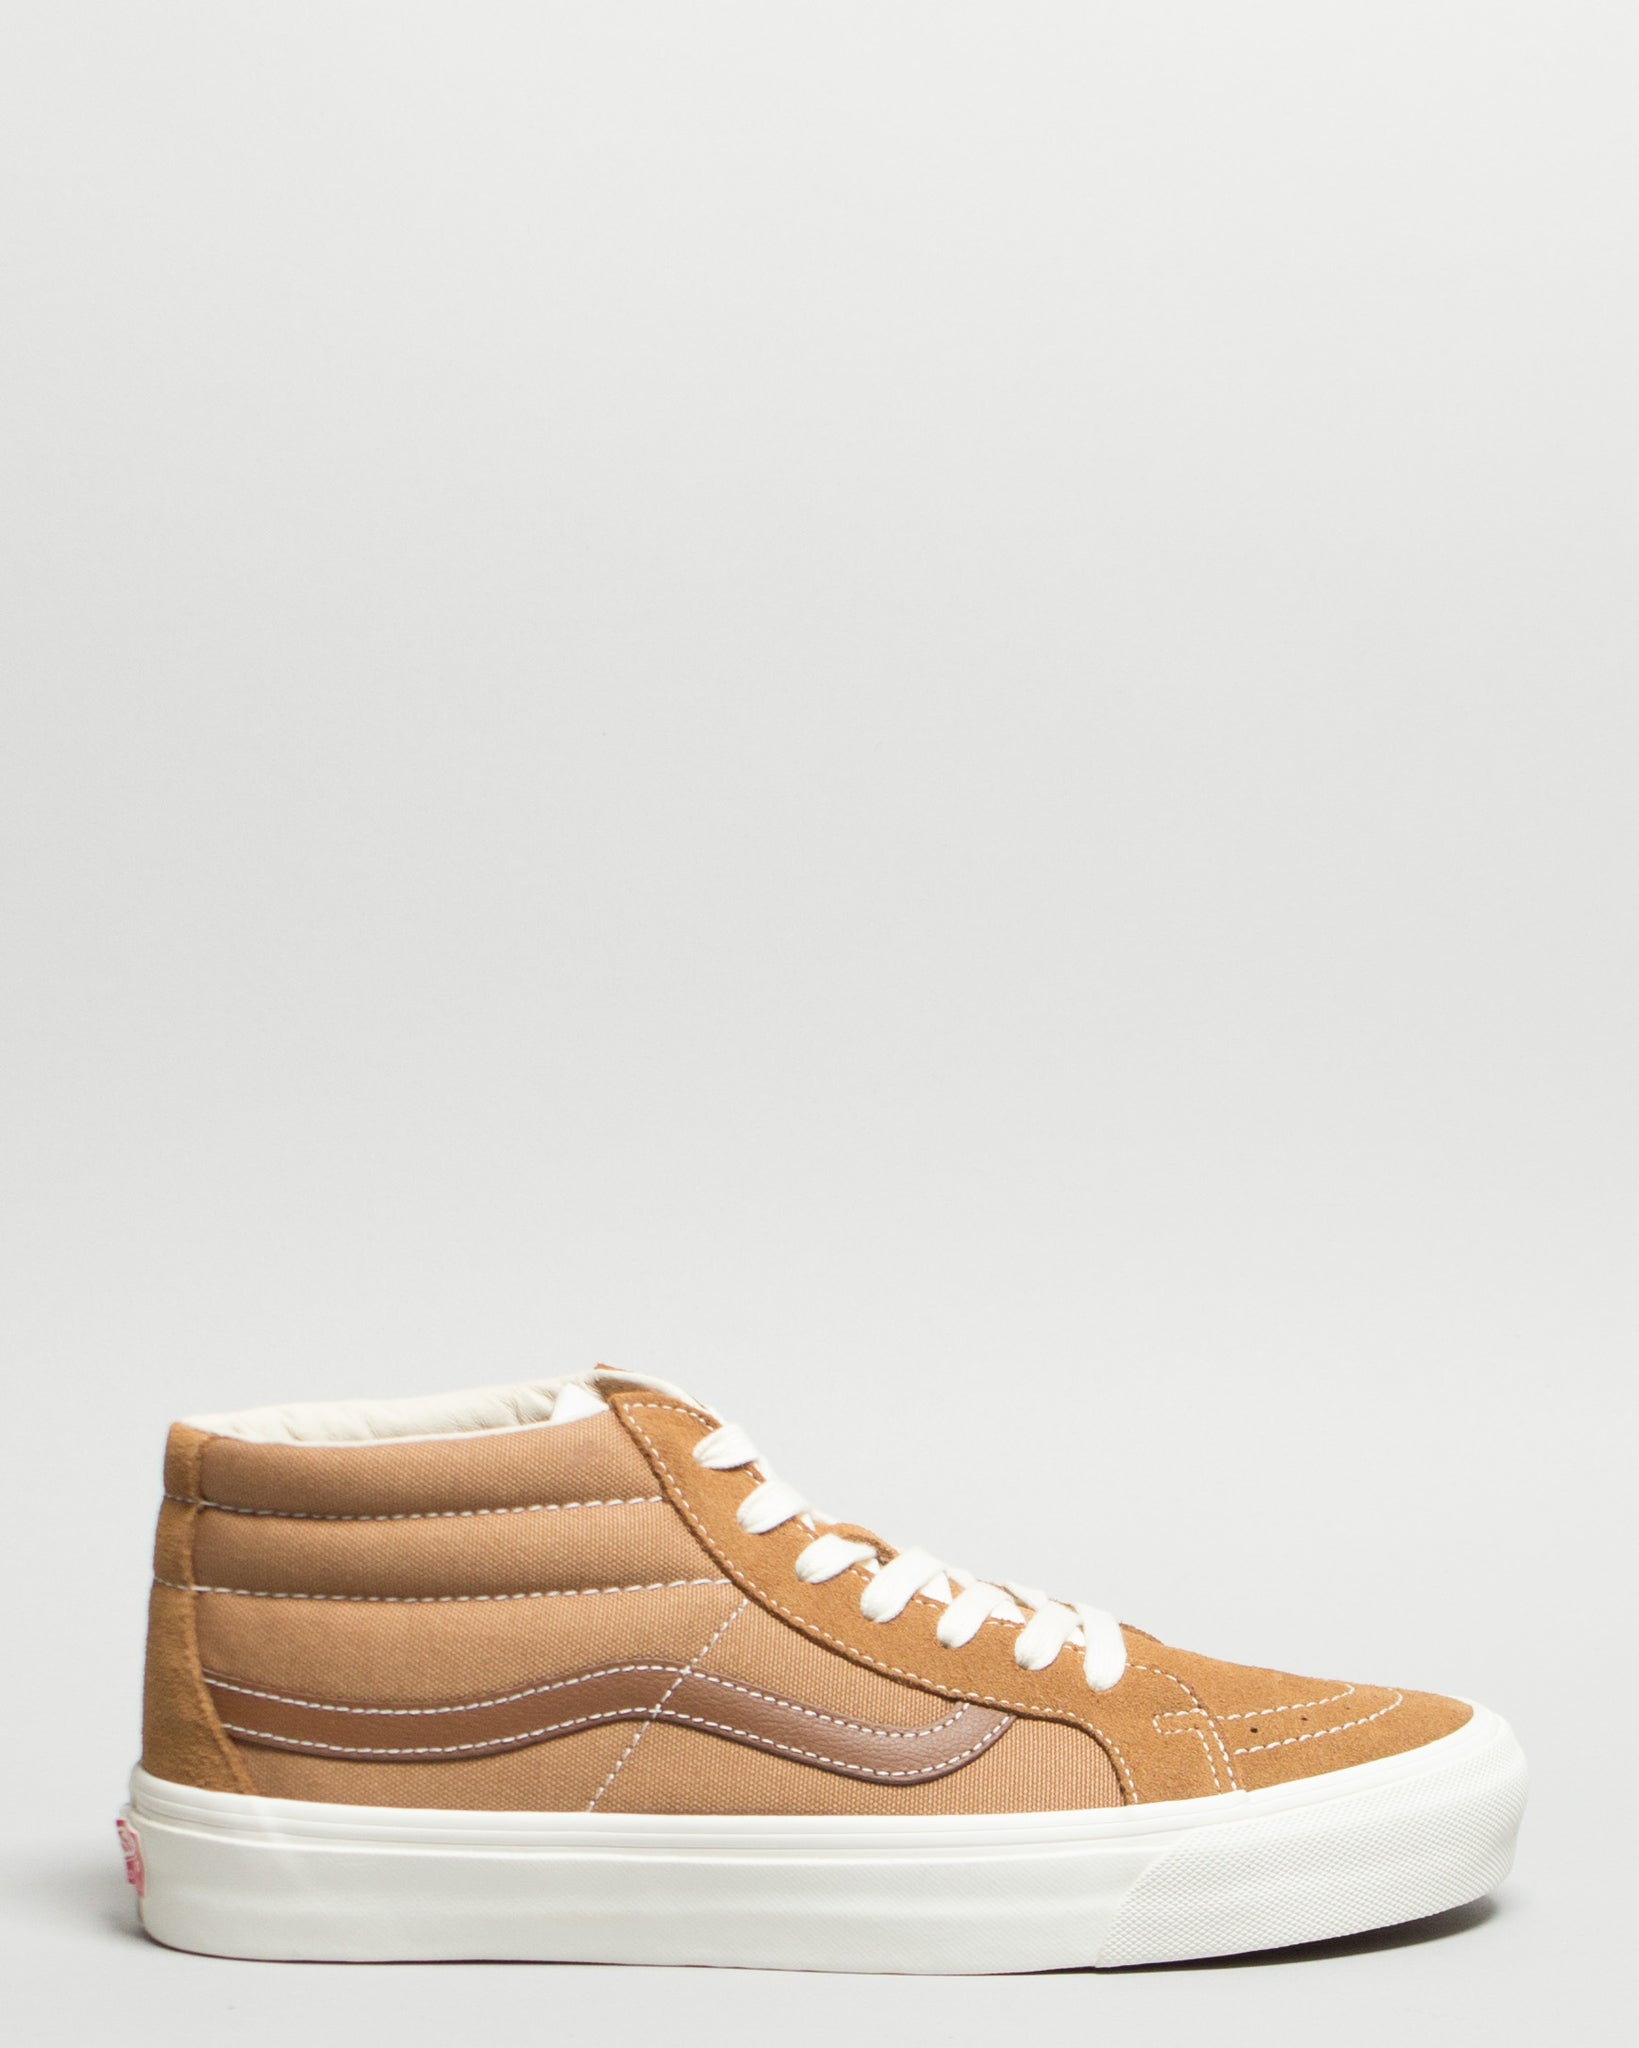 OG SK8-Mid LX (Suede/Canvas) Tobacco/White